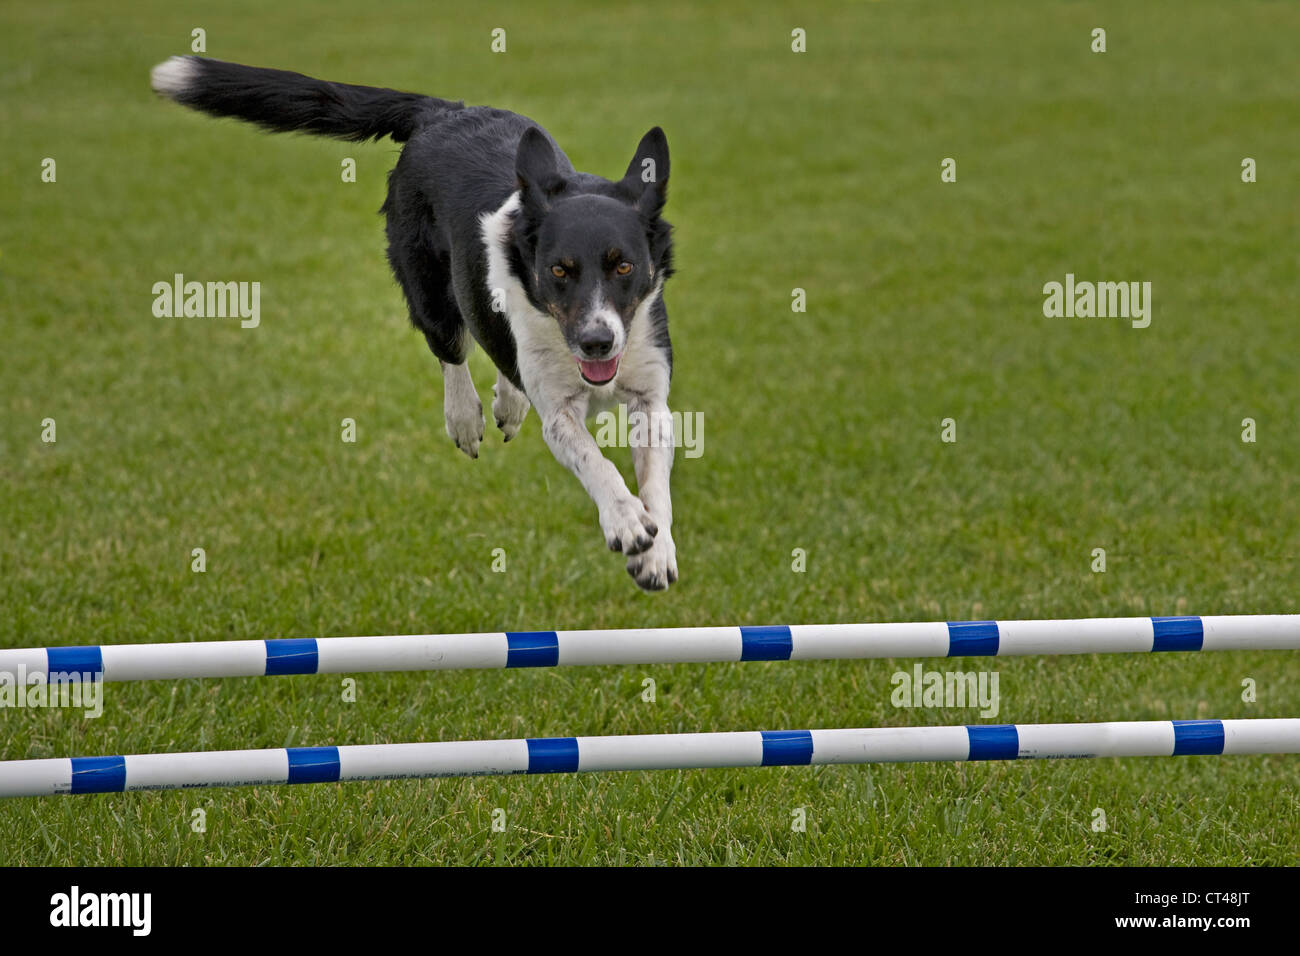 A herding dog going over a jump during the Agility event an AKC dog show - Stock Image